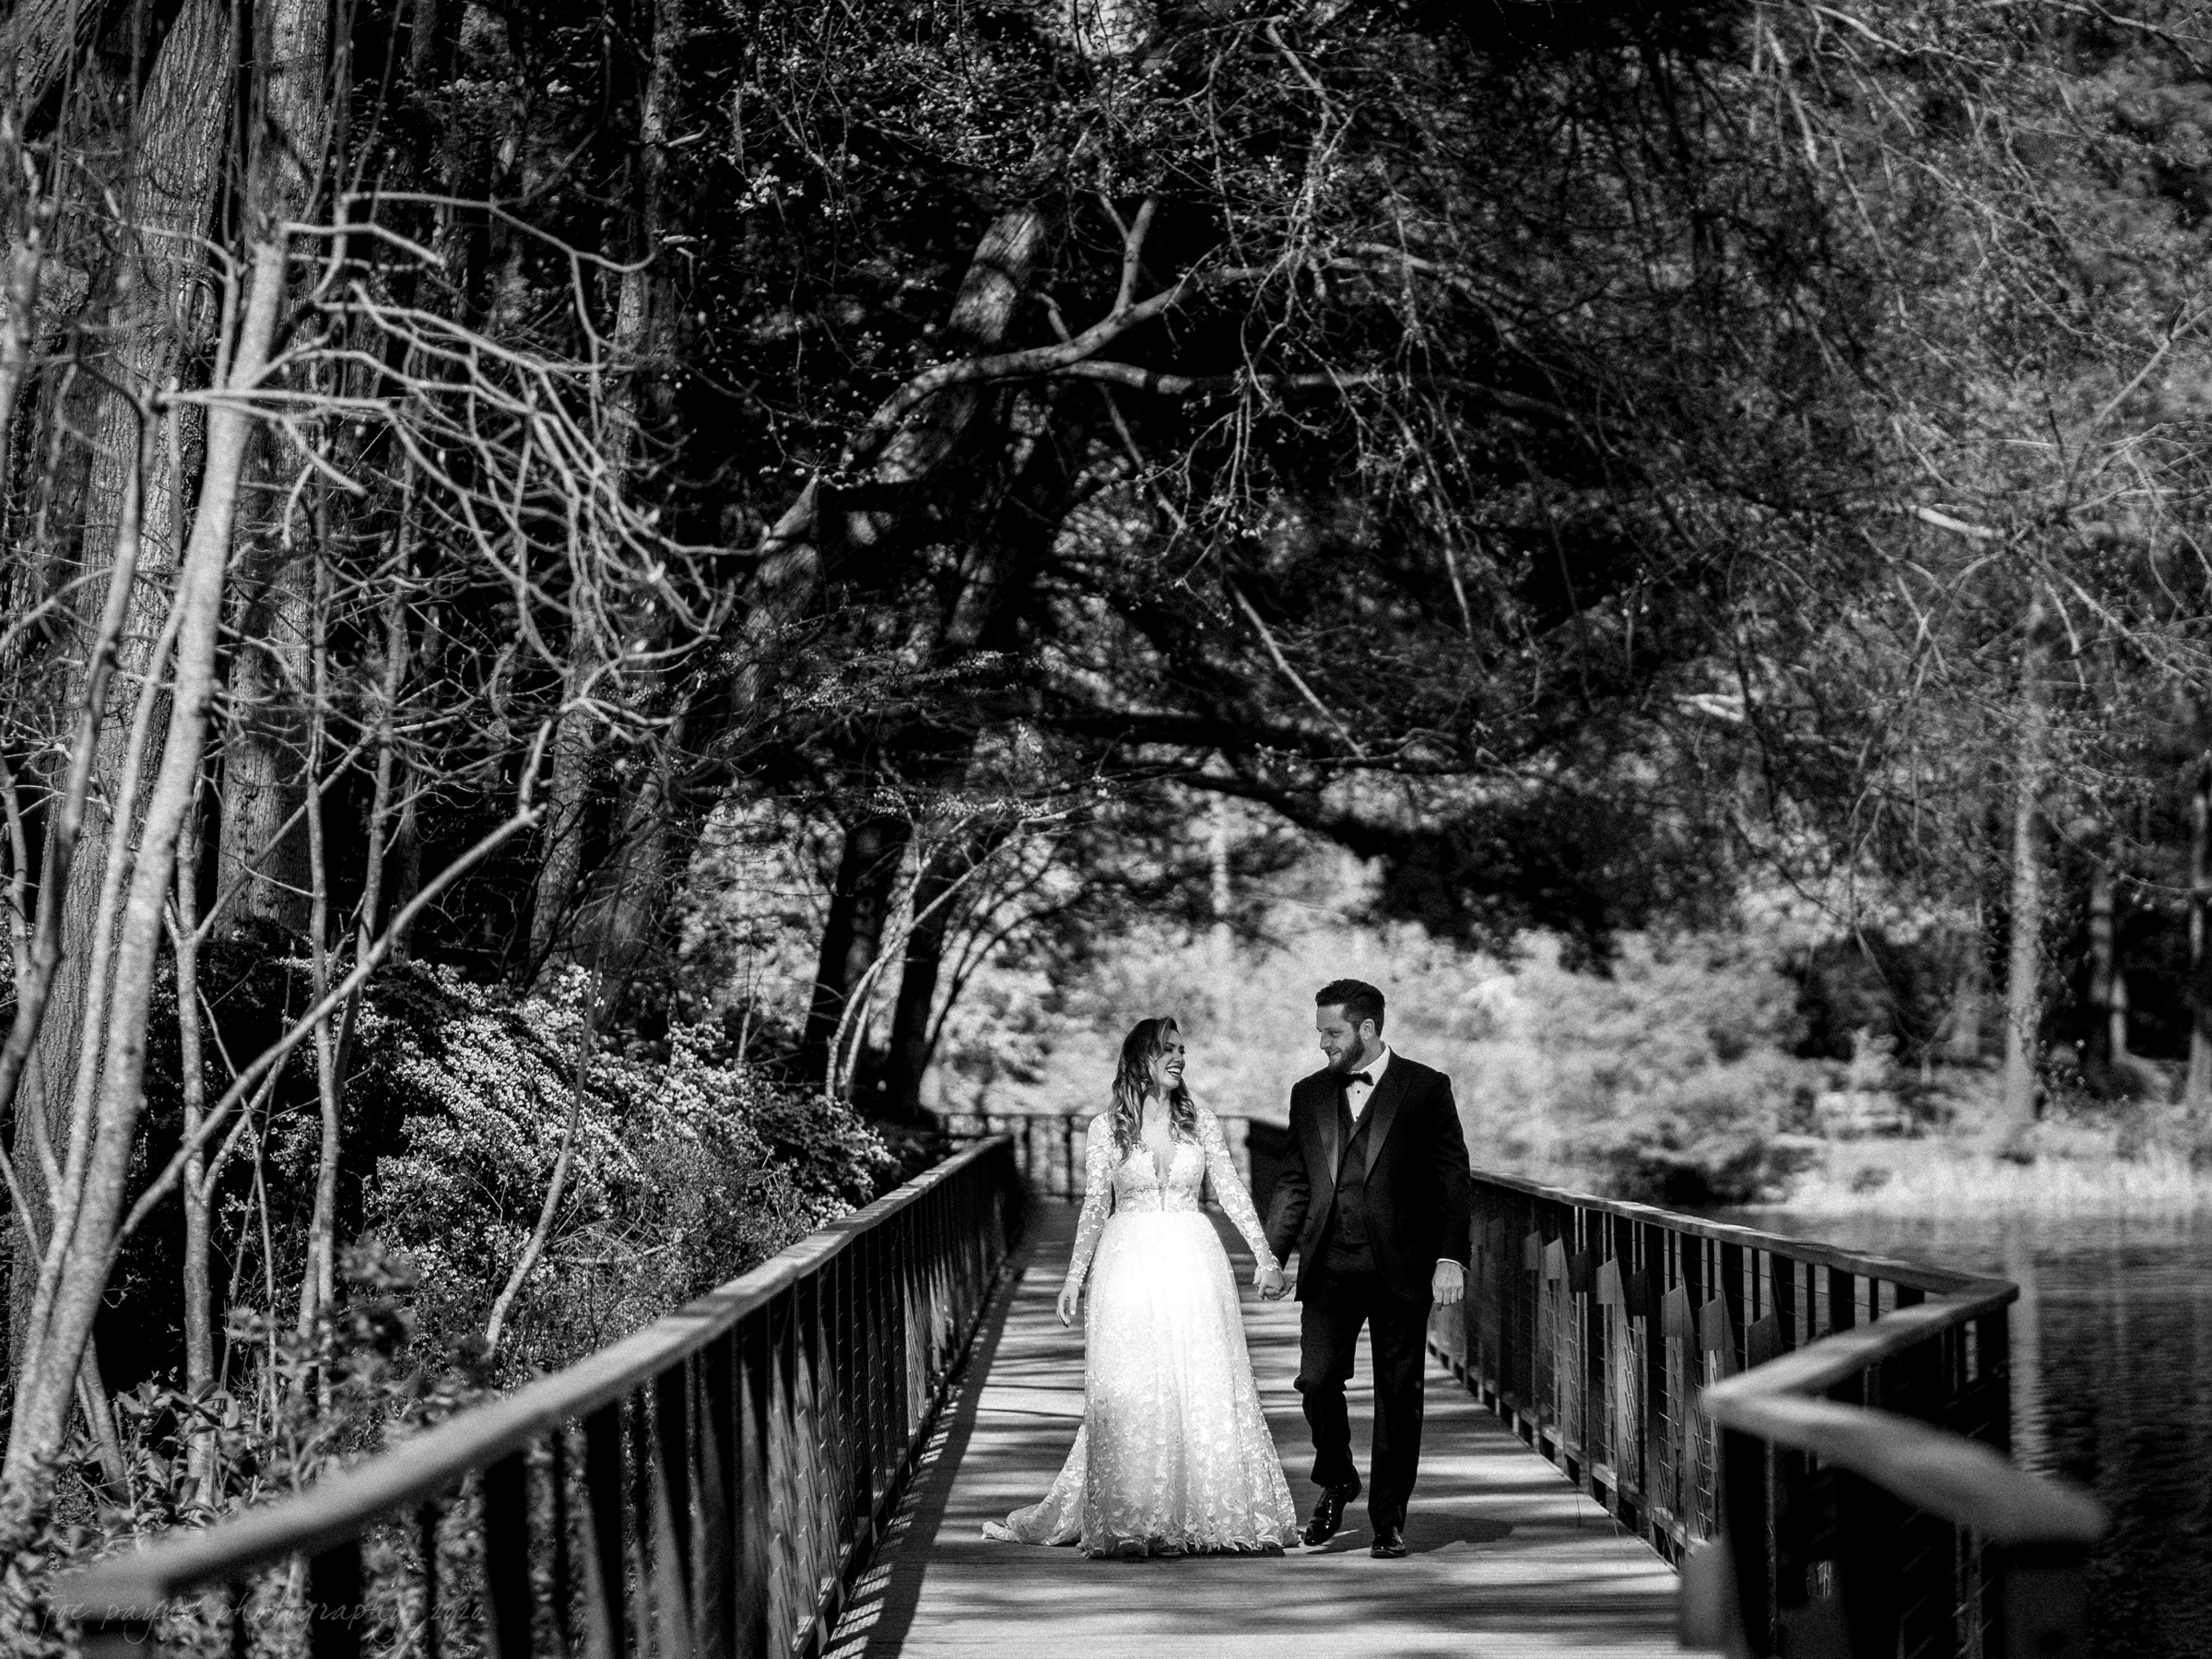 umstead hotel park wedding photography brittany harrison 13